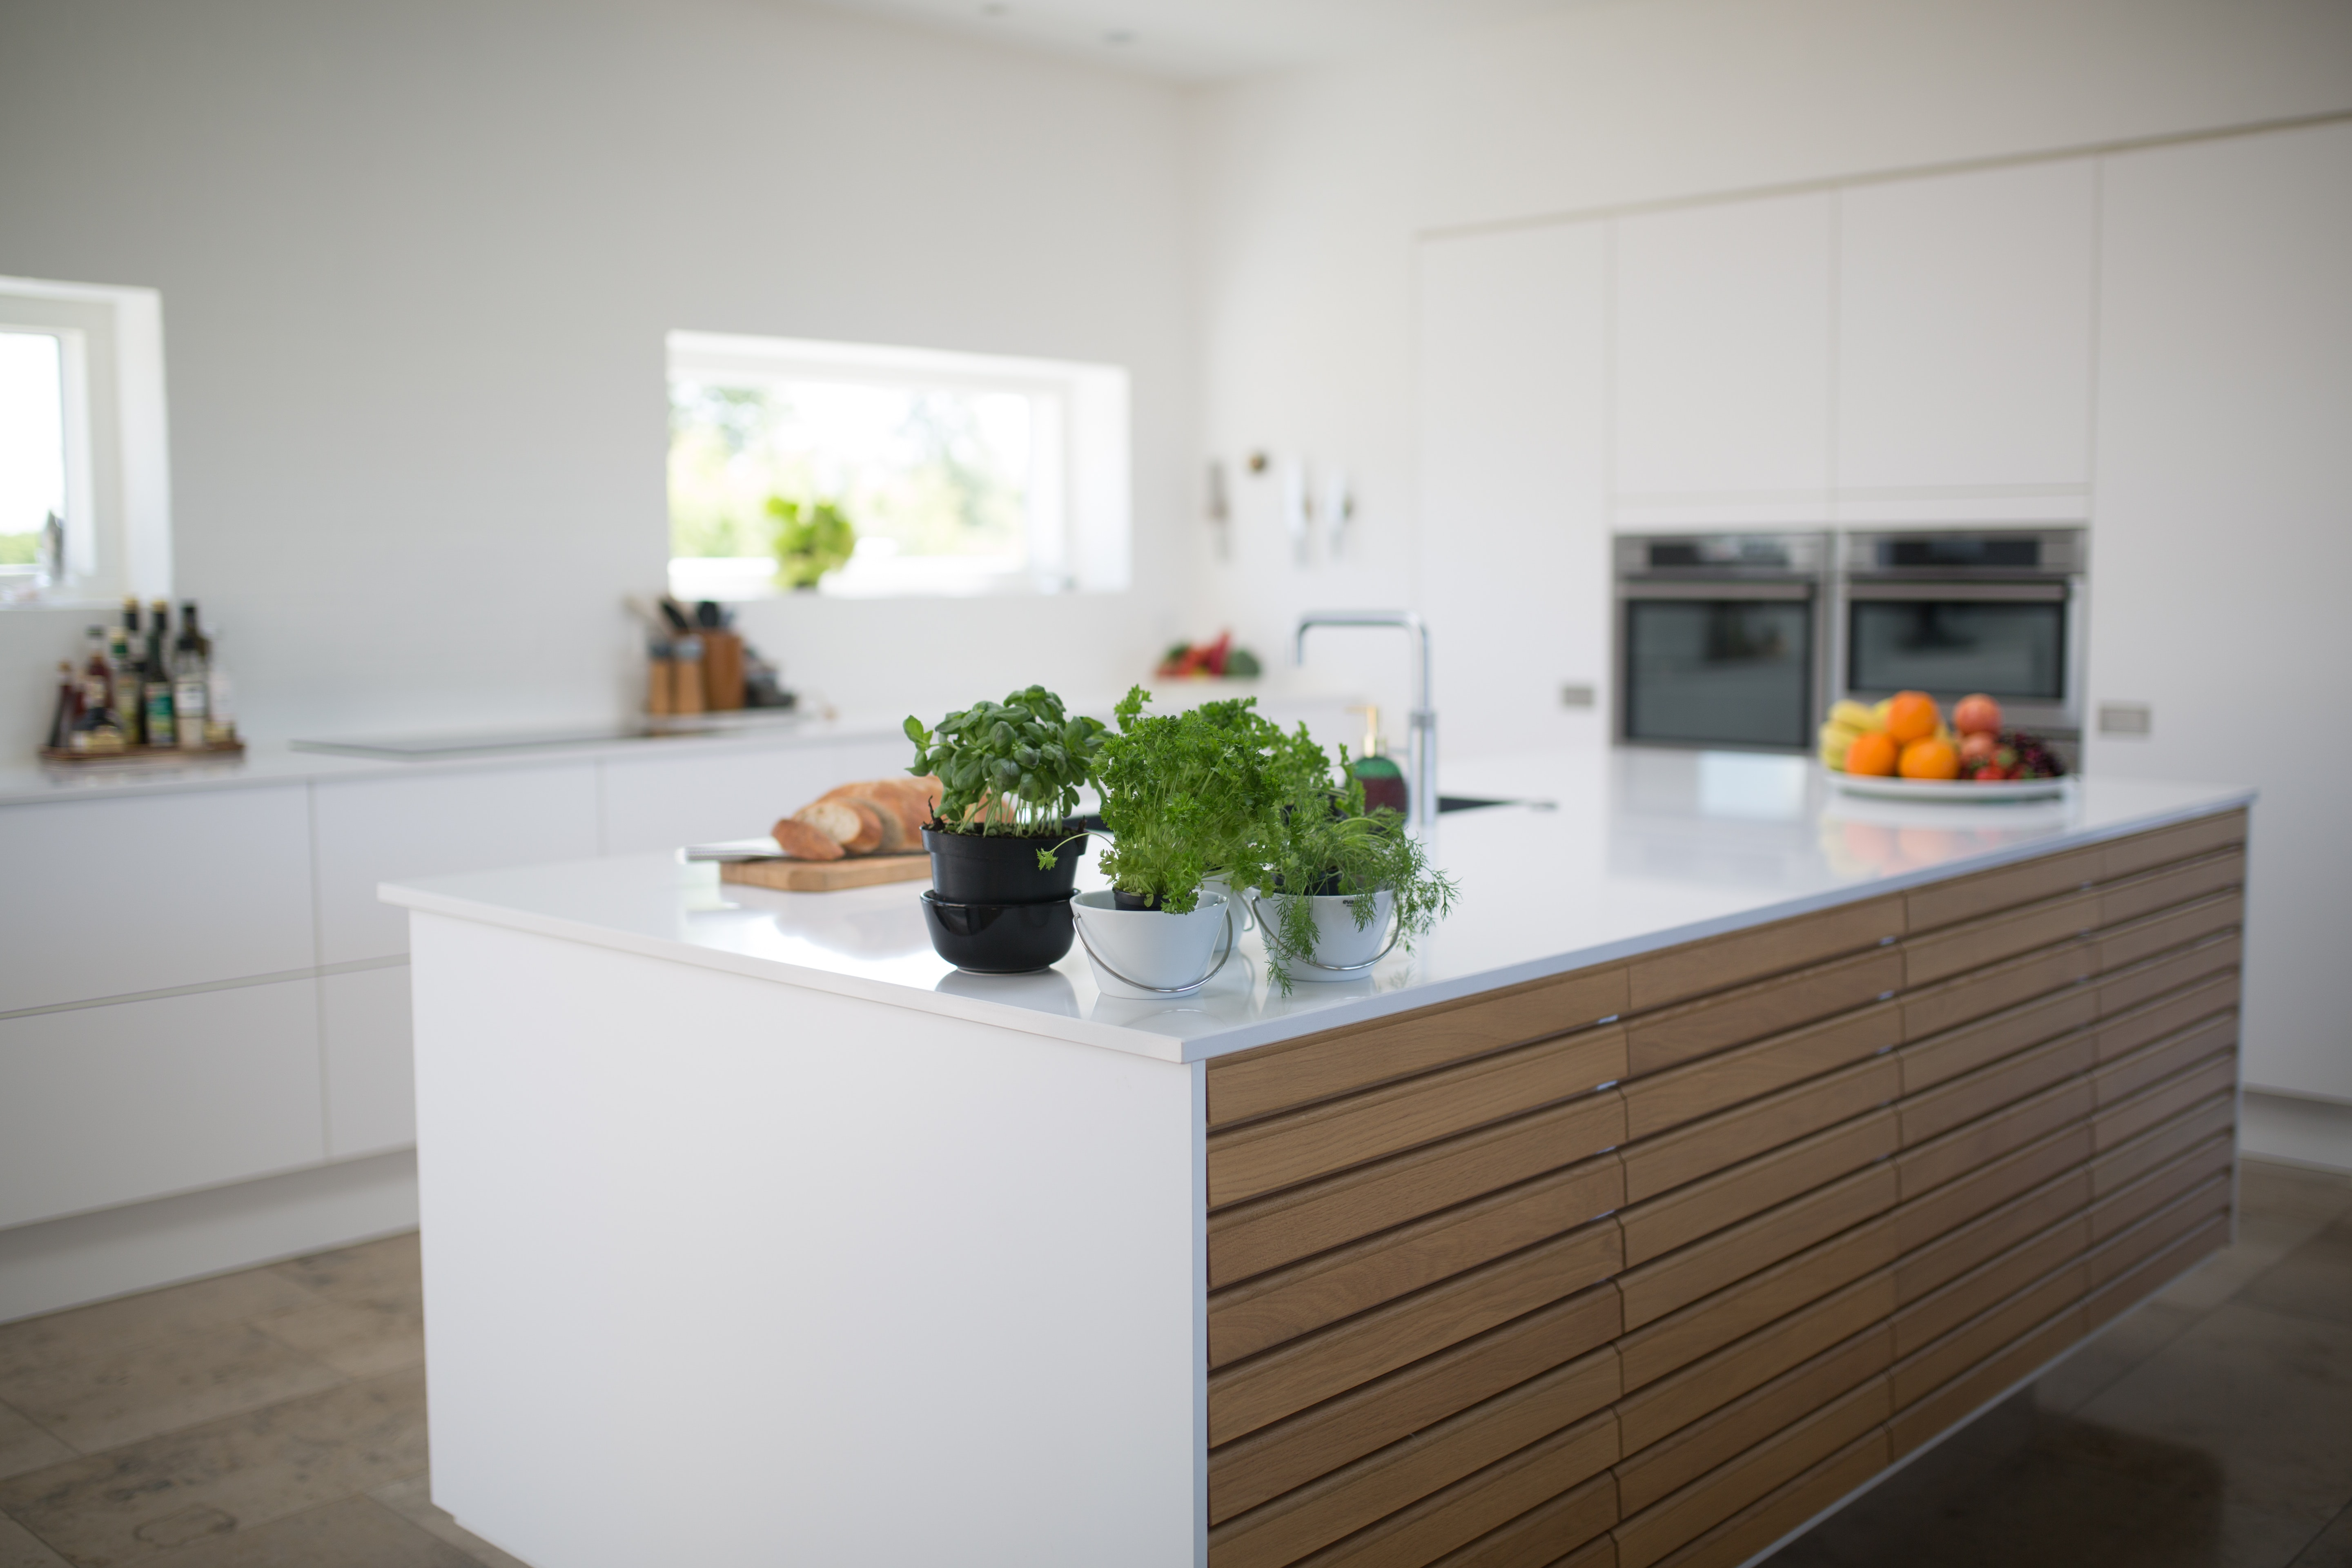 You Ll Find Pictures Of Empty Kitchens As Well With Delicious Food In It All Our Images Are High Quality And Can Be Used For Free